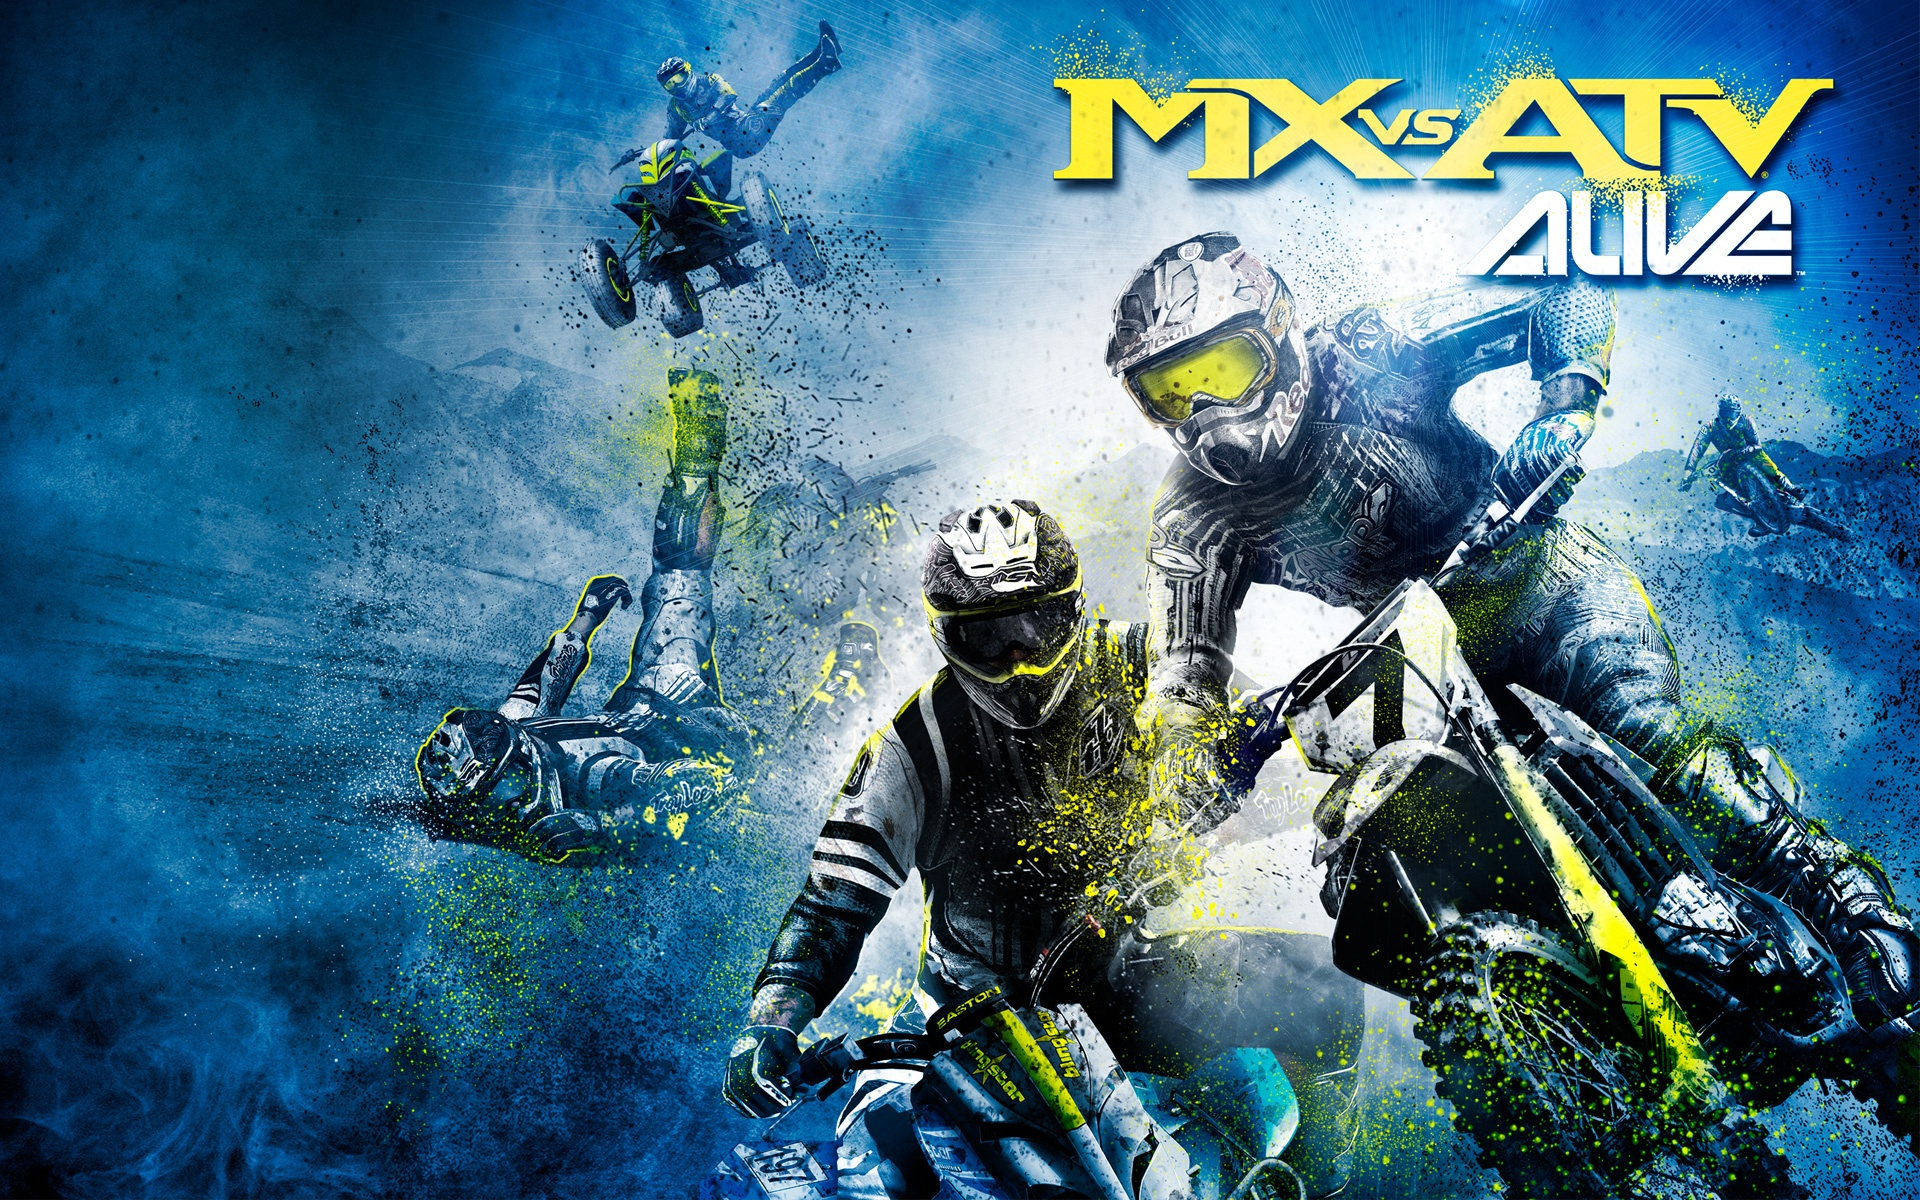 4 MX vs ATV Alive HD Wallpapers Backgrounds   Wallpaper 1920x1200